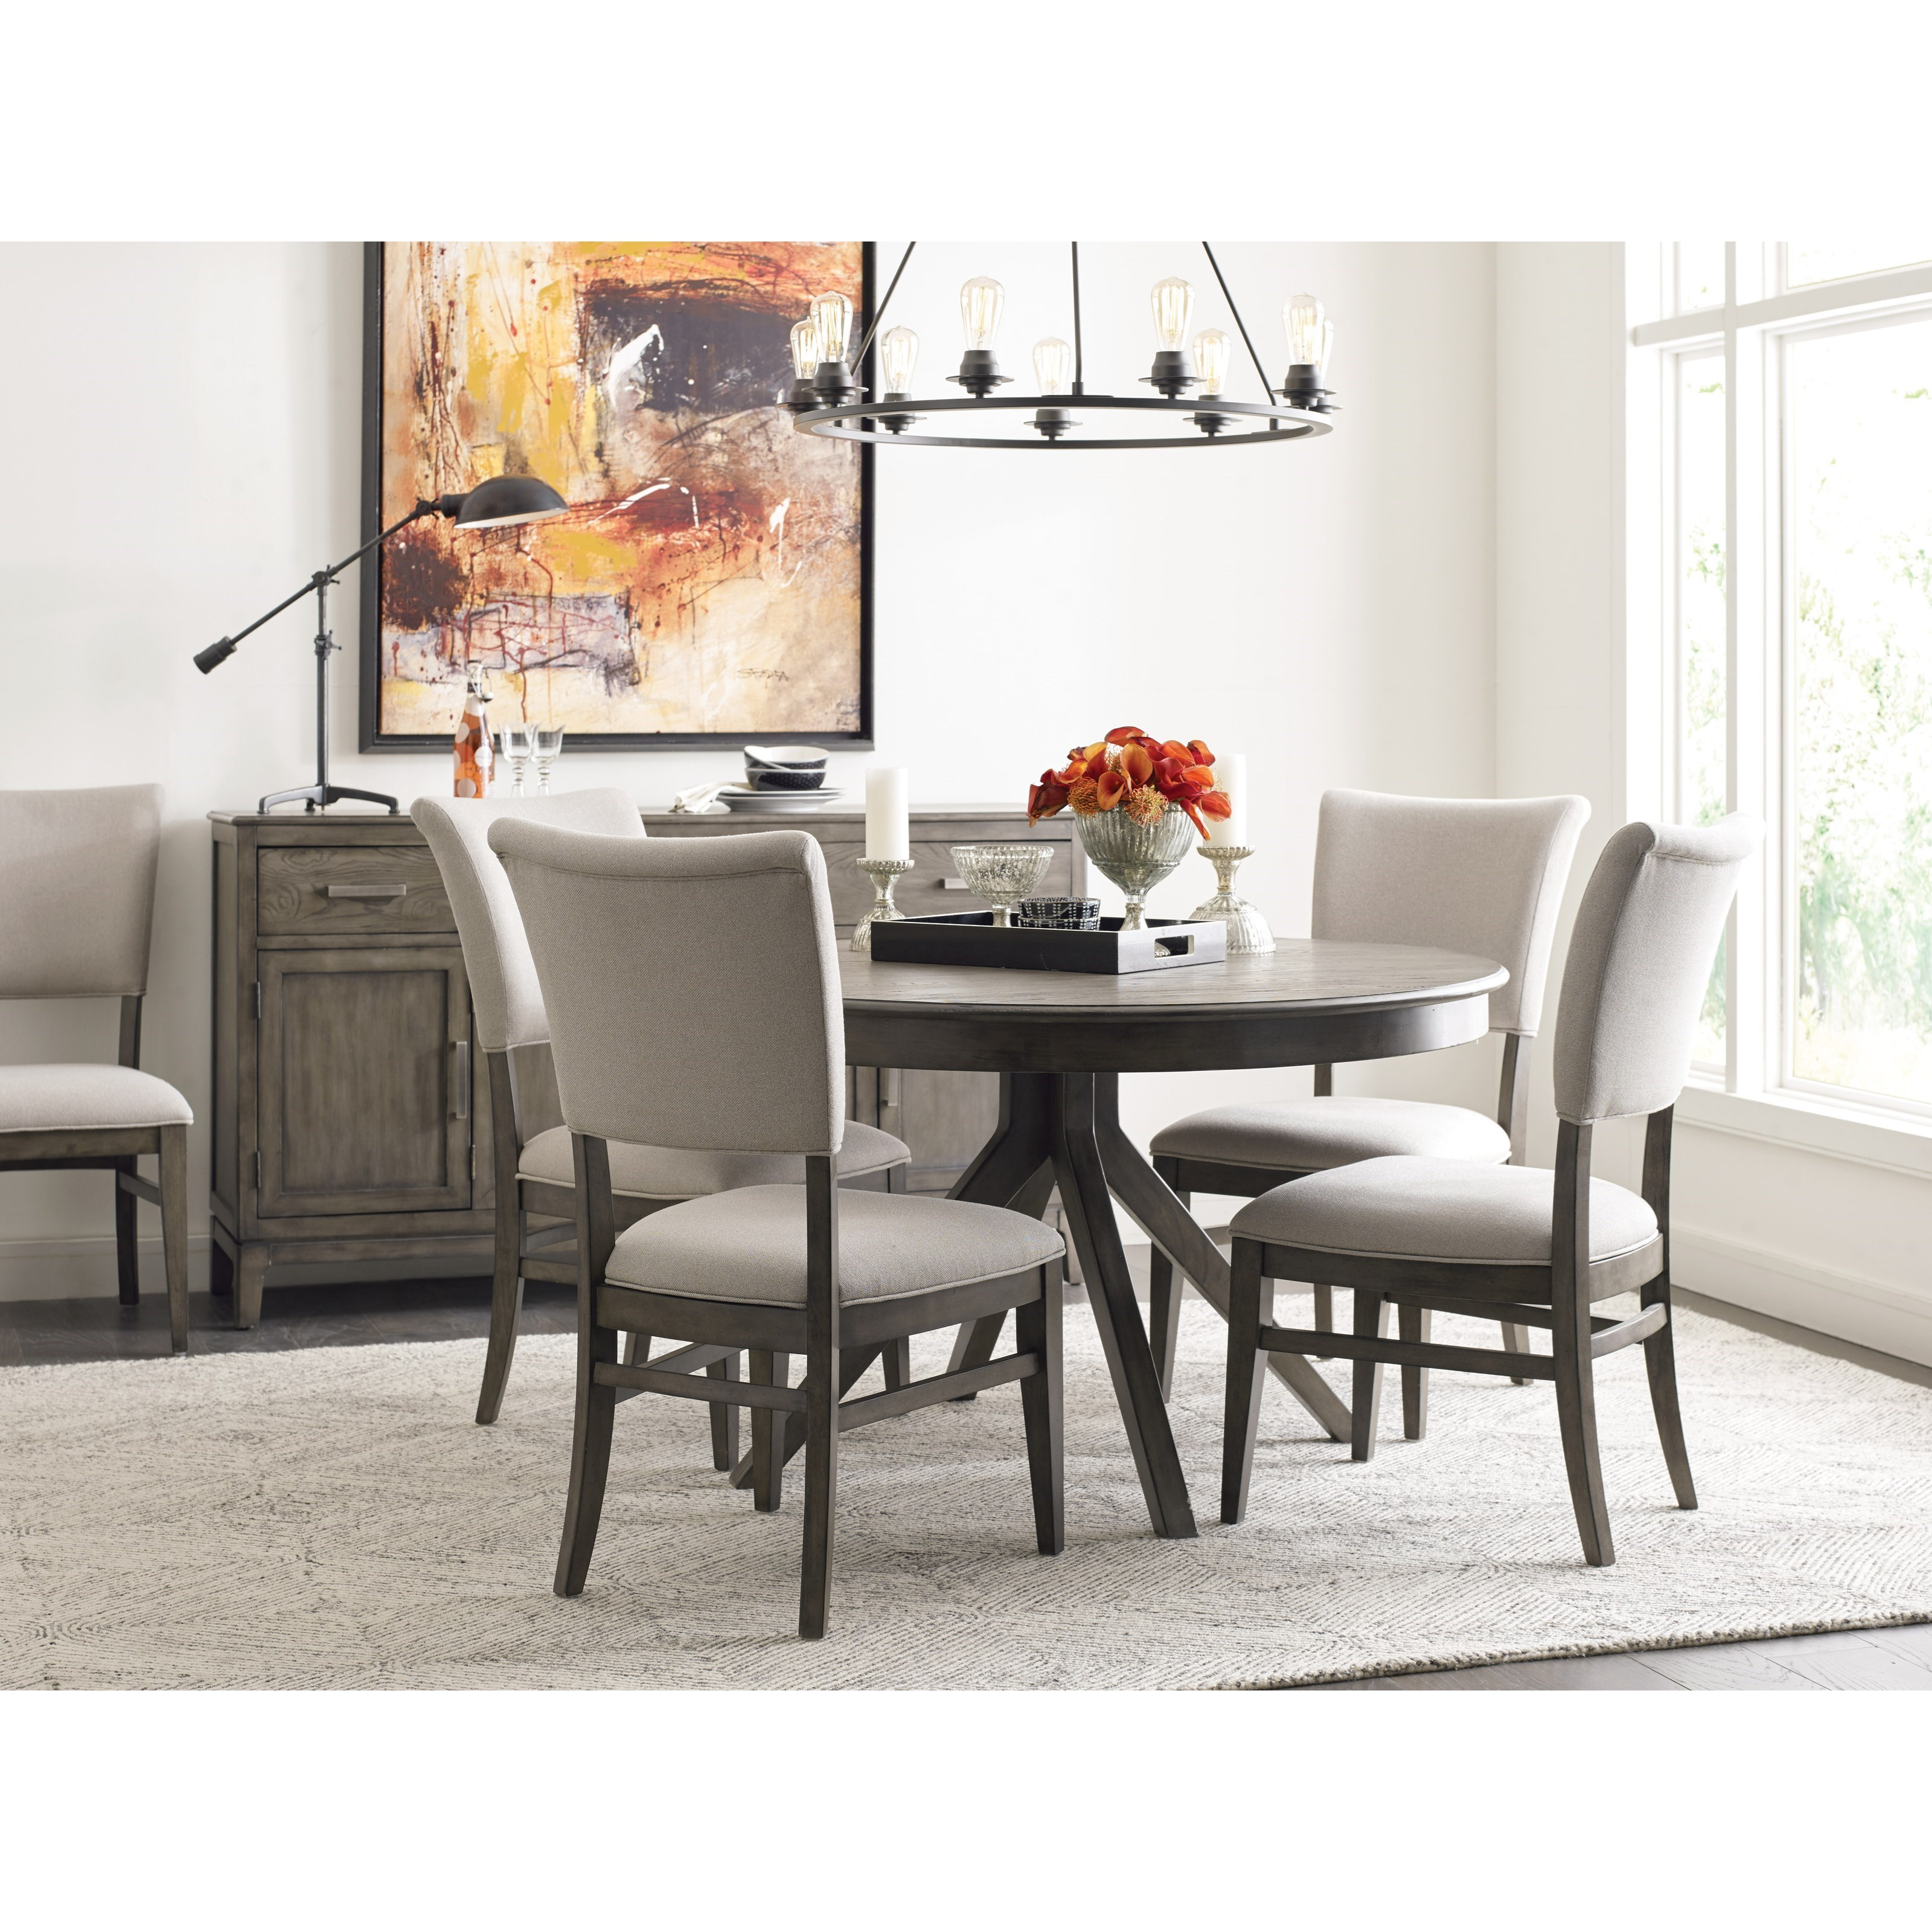 Cascade Casual Dining Room Group by Kincaid Furniture at Northeast Factory Direct